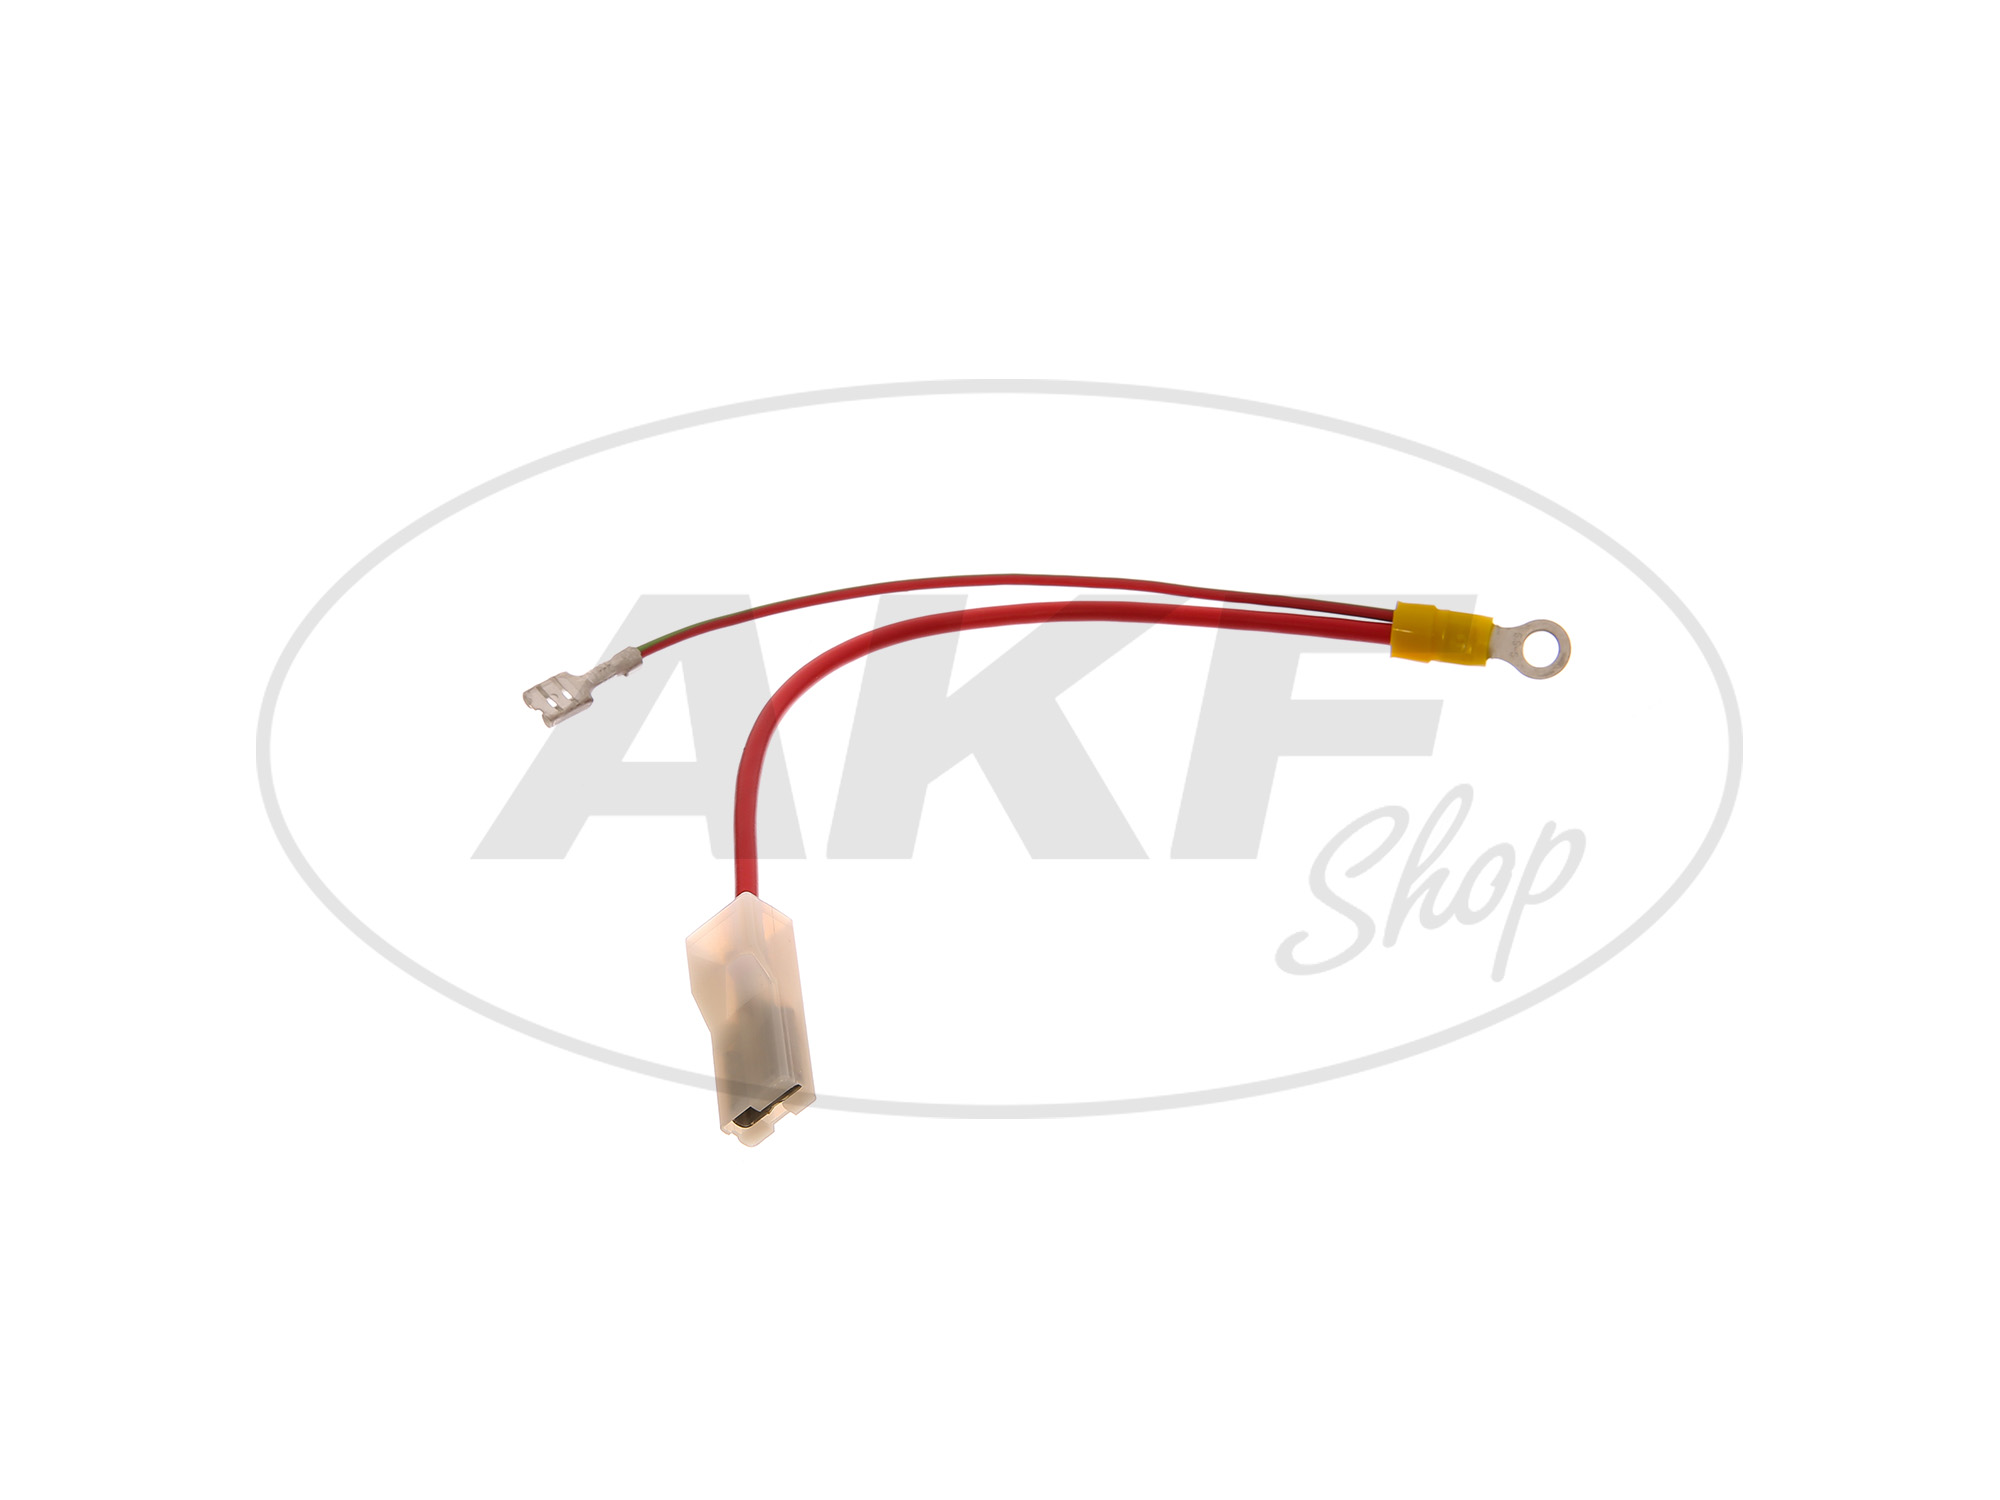 Set Wiring Harness Electric Starter Cable With Push Button Diagram Image 7